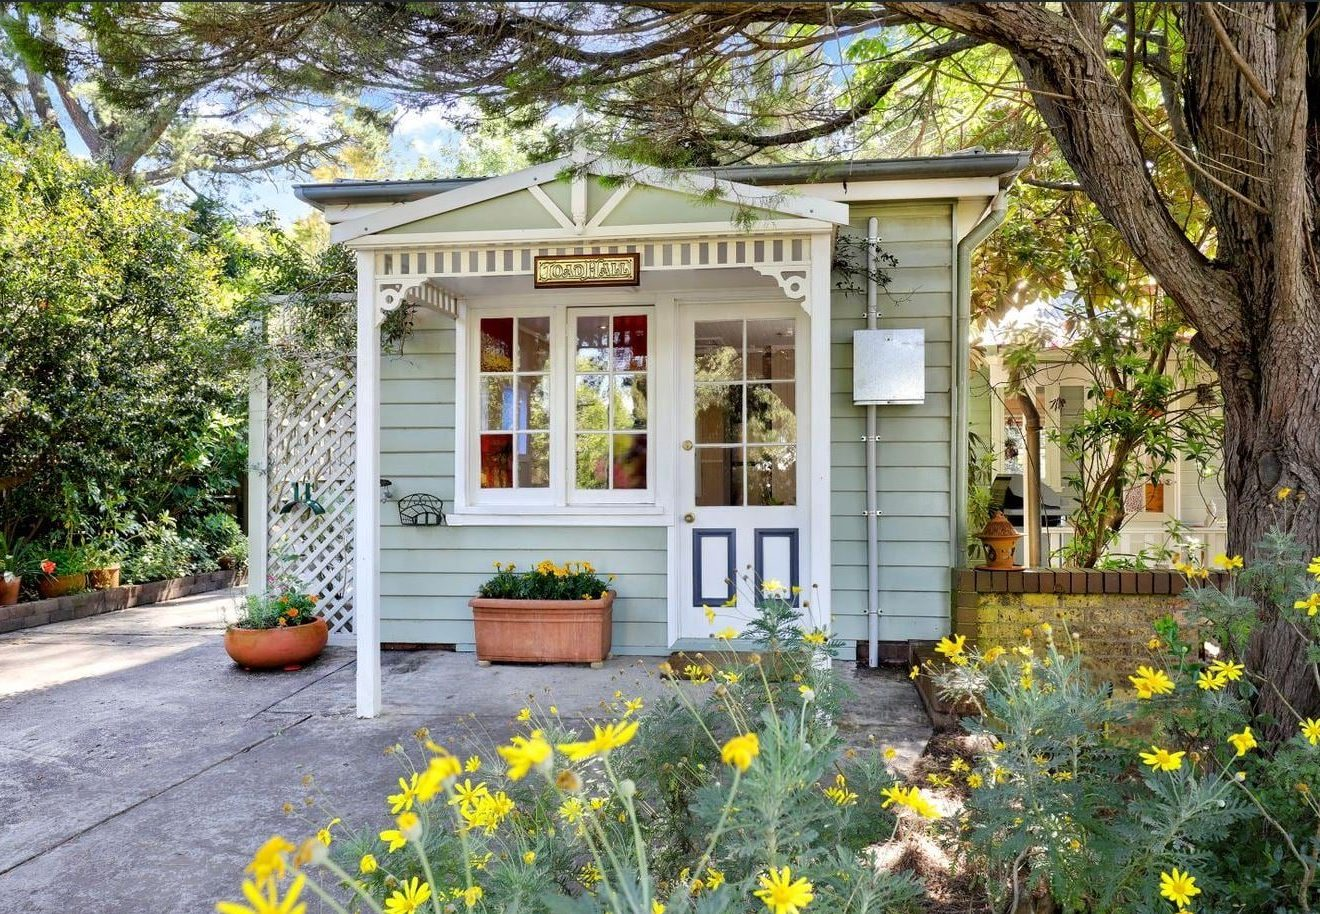 Toad Hall Tiny House in Australia